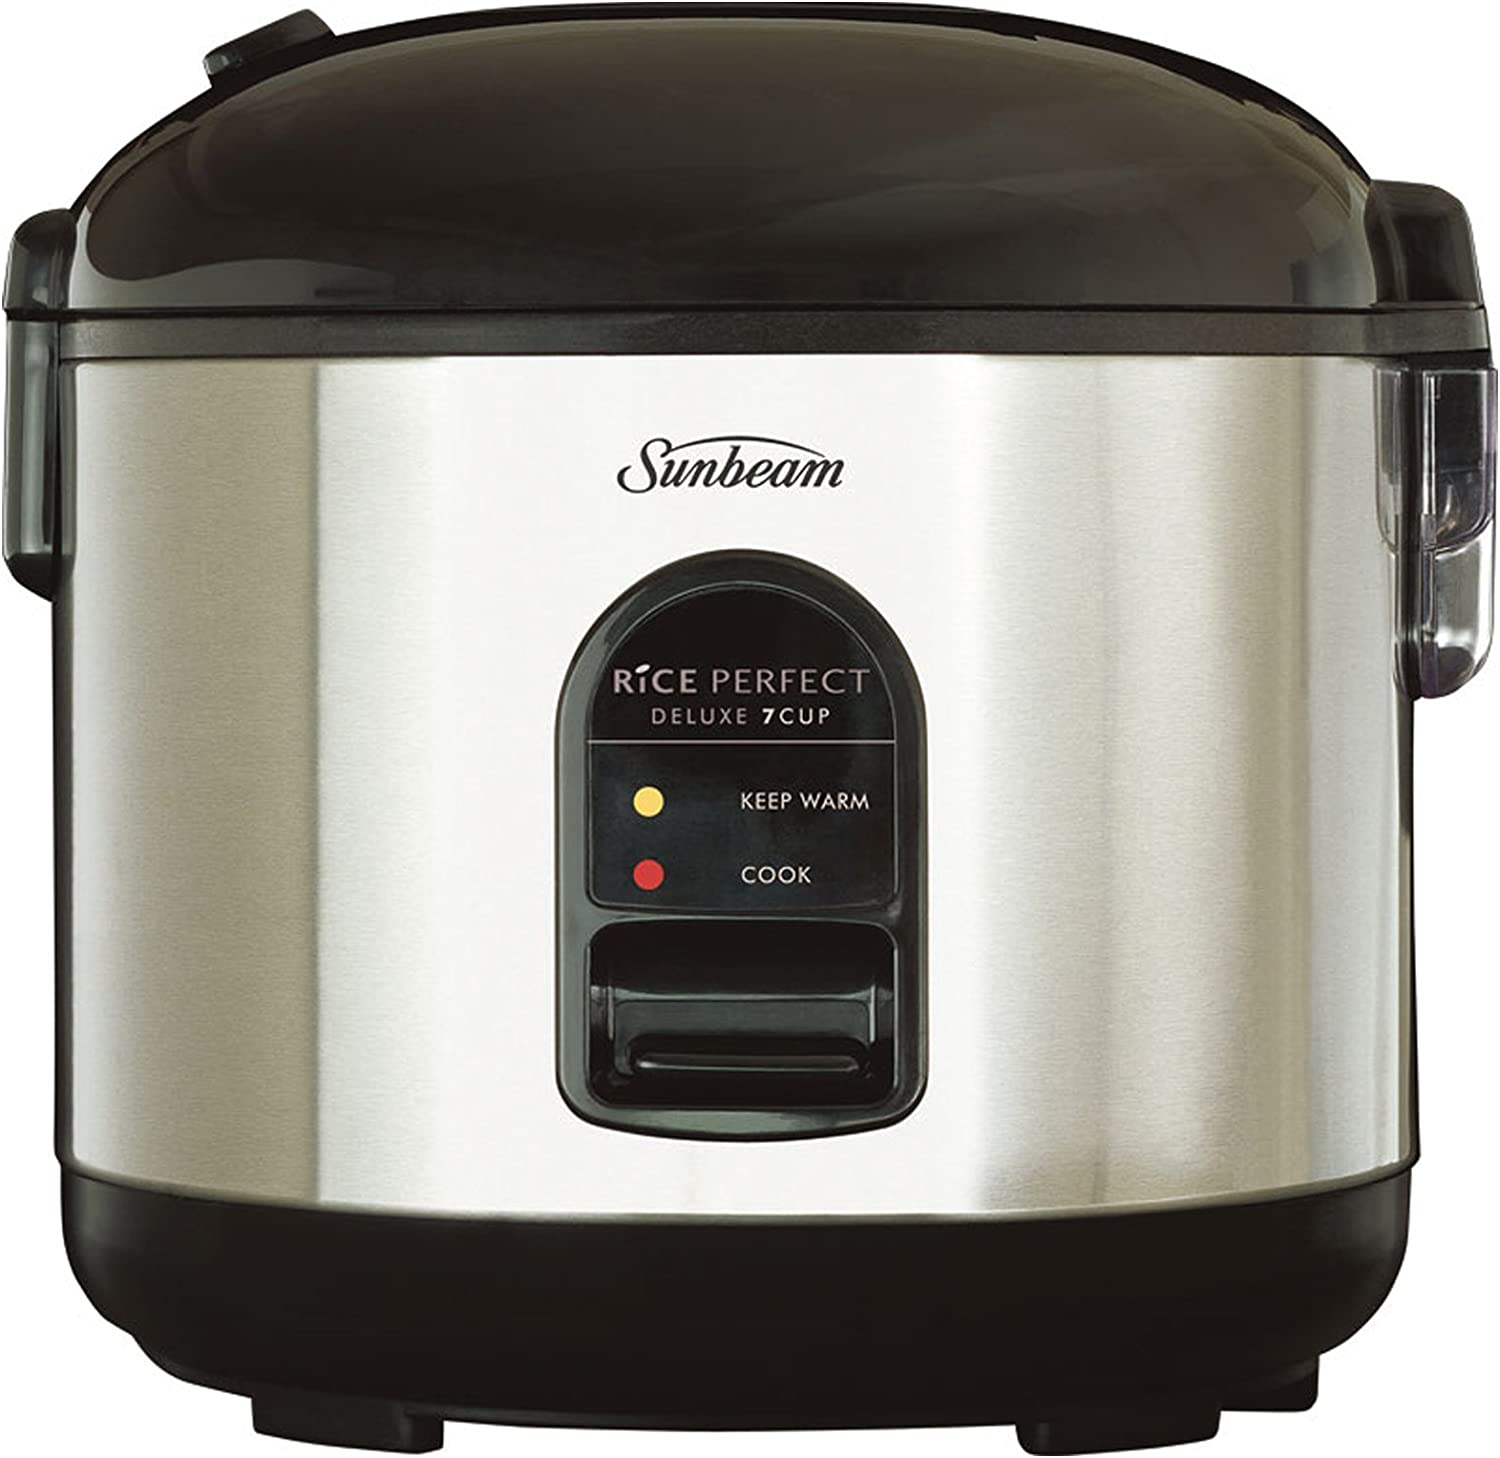 Sunbeam Rice Perfect Deluxe 7 Rice Cooker & Steamer